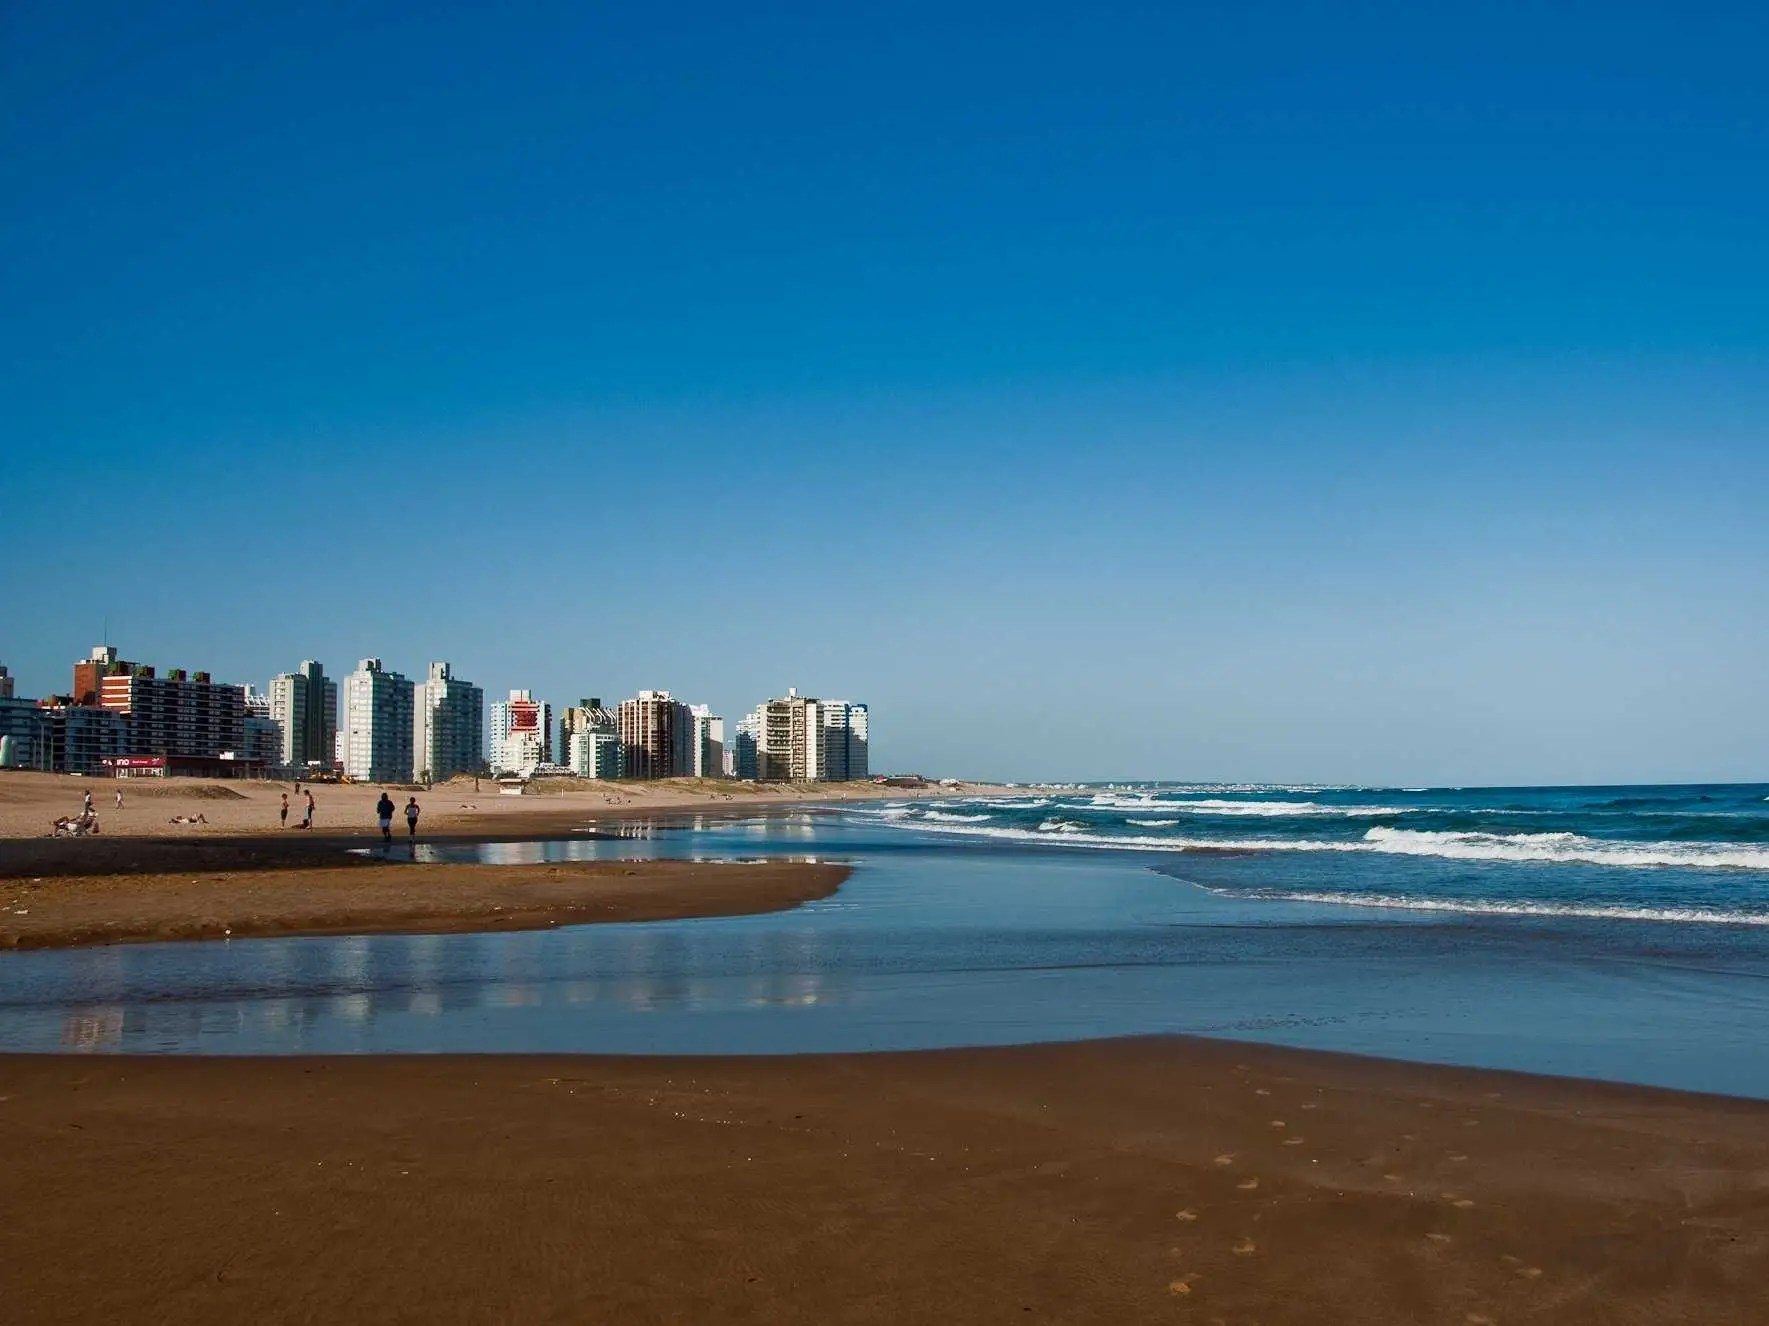 Playa de los Ingleses in Punta del Este, Uruguay, is known as one of the best party beaches in South America. It's also great for strolling along the miles of soft, sandy coastline.